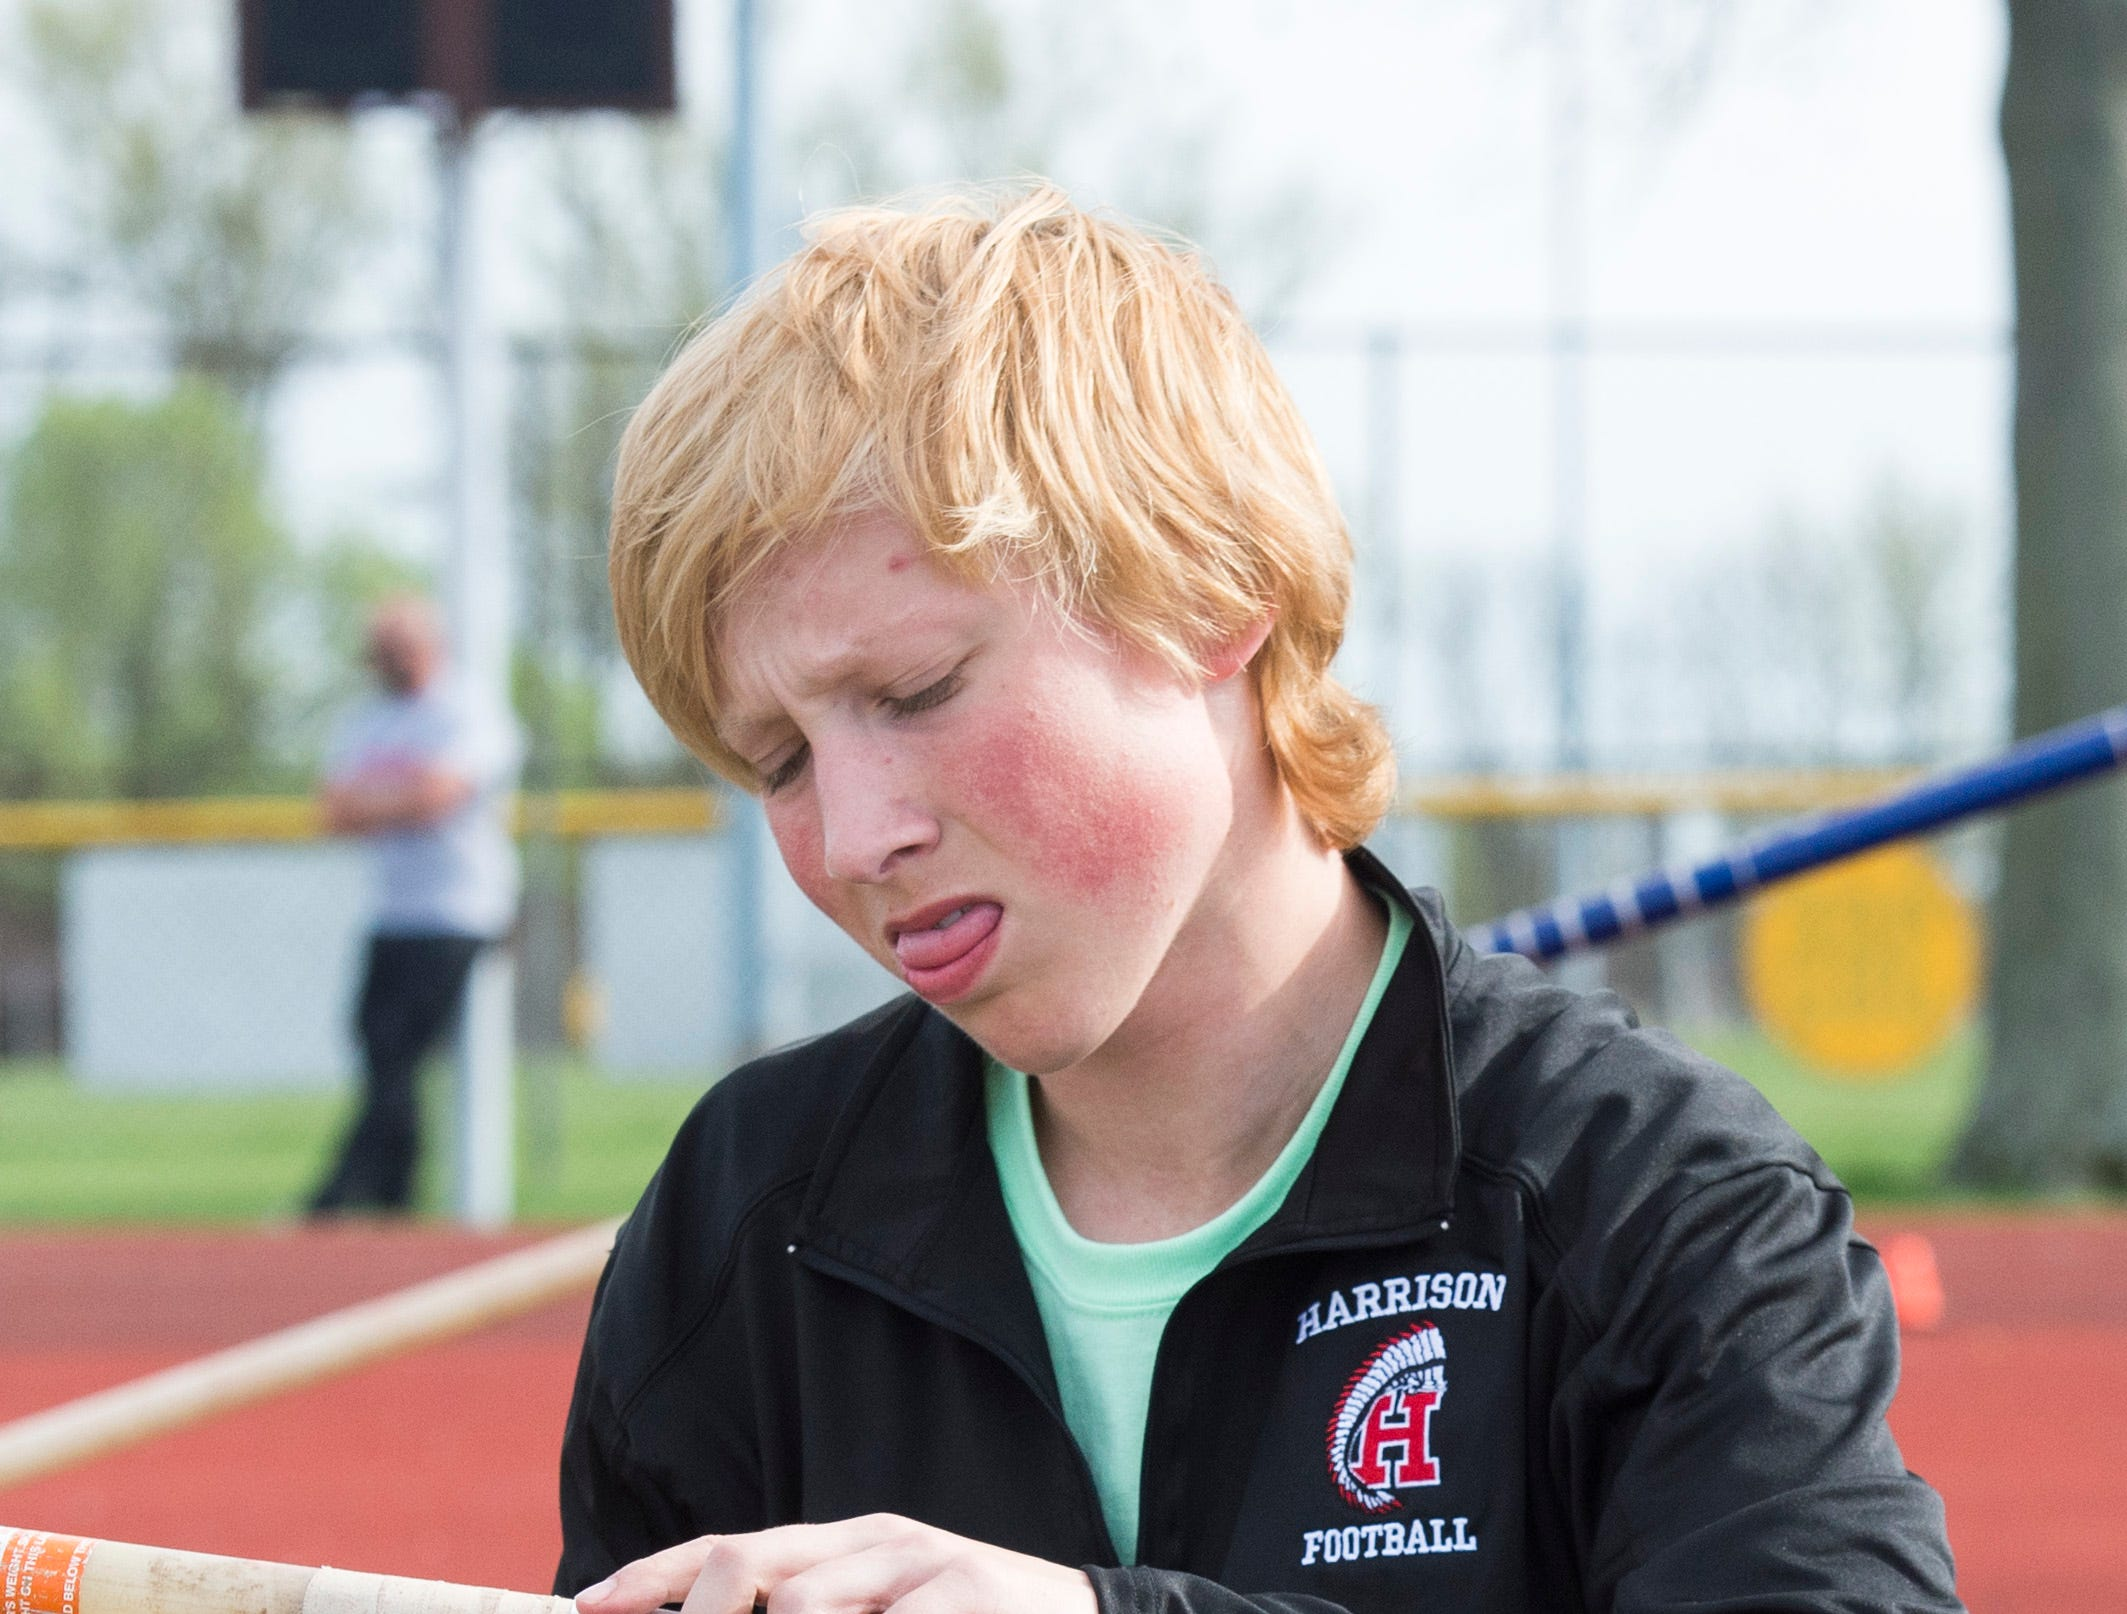 Harrison's Evan Doan tapes his pole before the 2019 City Track and Field meet at Central High School Friday, April 12, 2019.